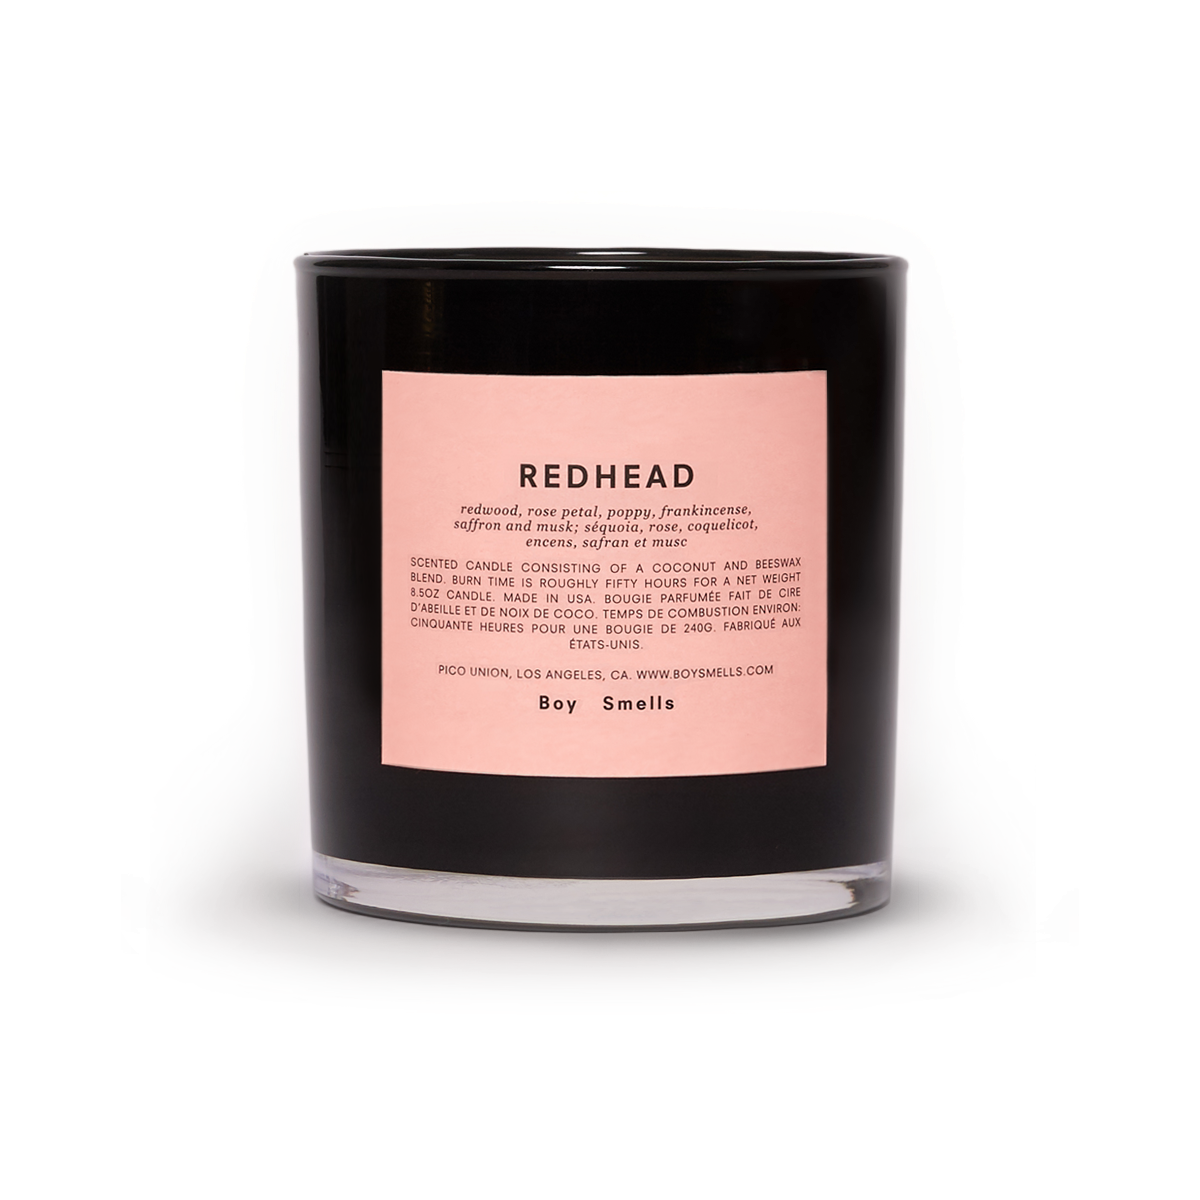 """Boy Smells - Redhead / $32""""Redheads are rare and fervent, much like the ingredients in this namesake candle."""""""